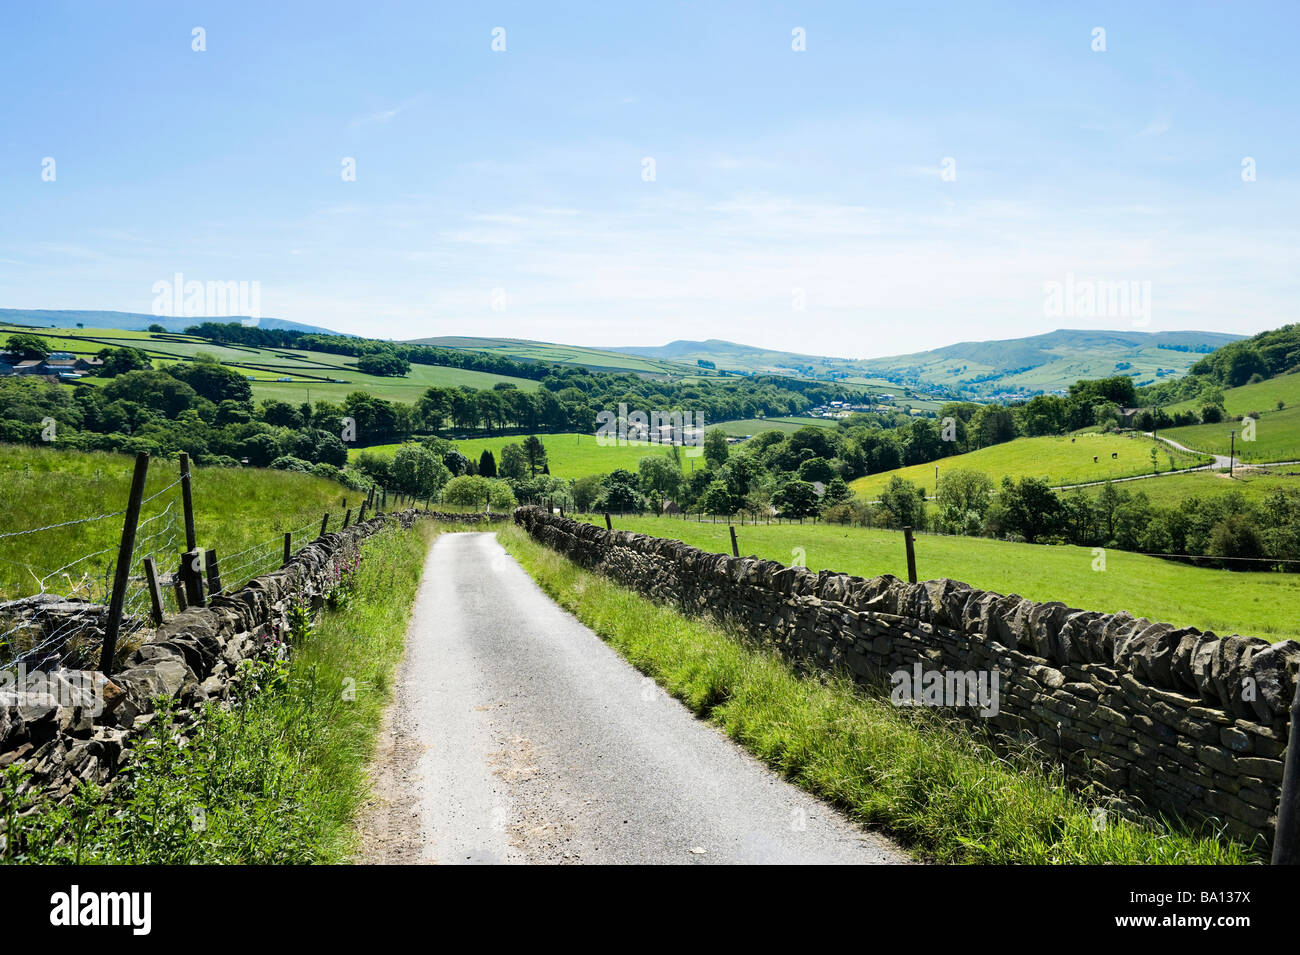 Country Lane in High Peak near Hayfield (between Glossop and Buxton), Peak District, Derbyshire, England, UK - Stock Image